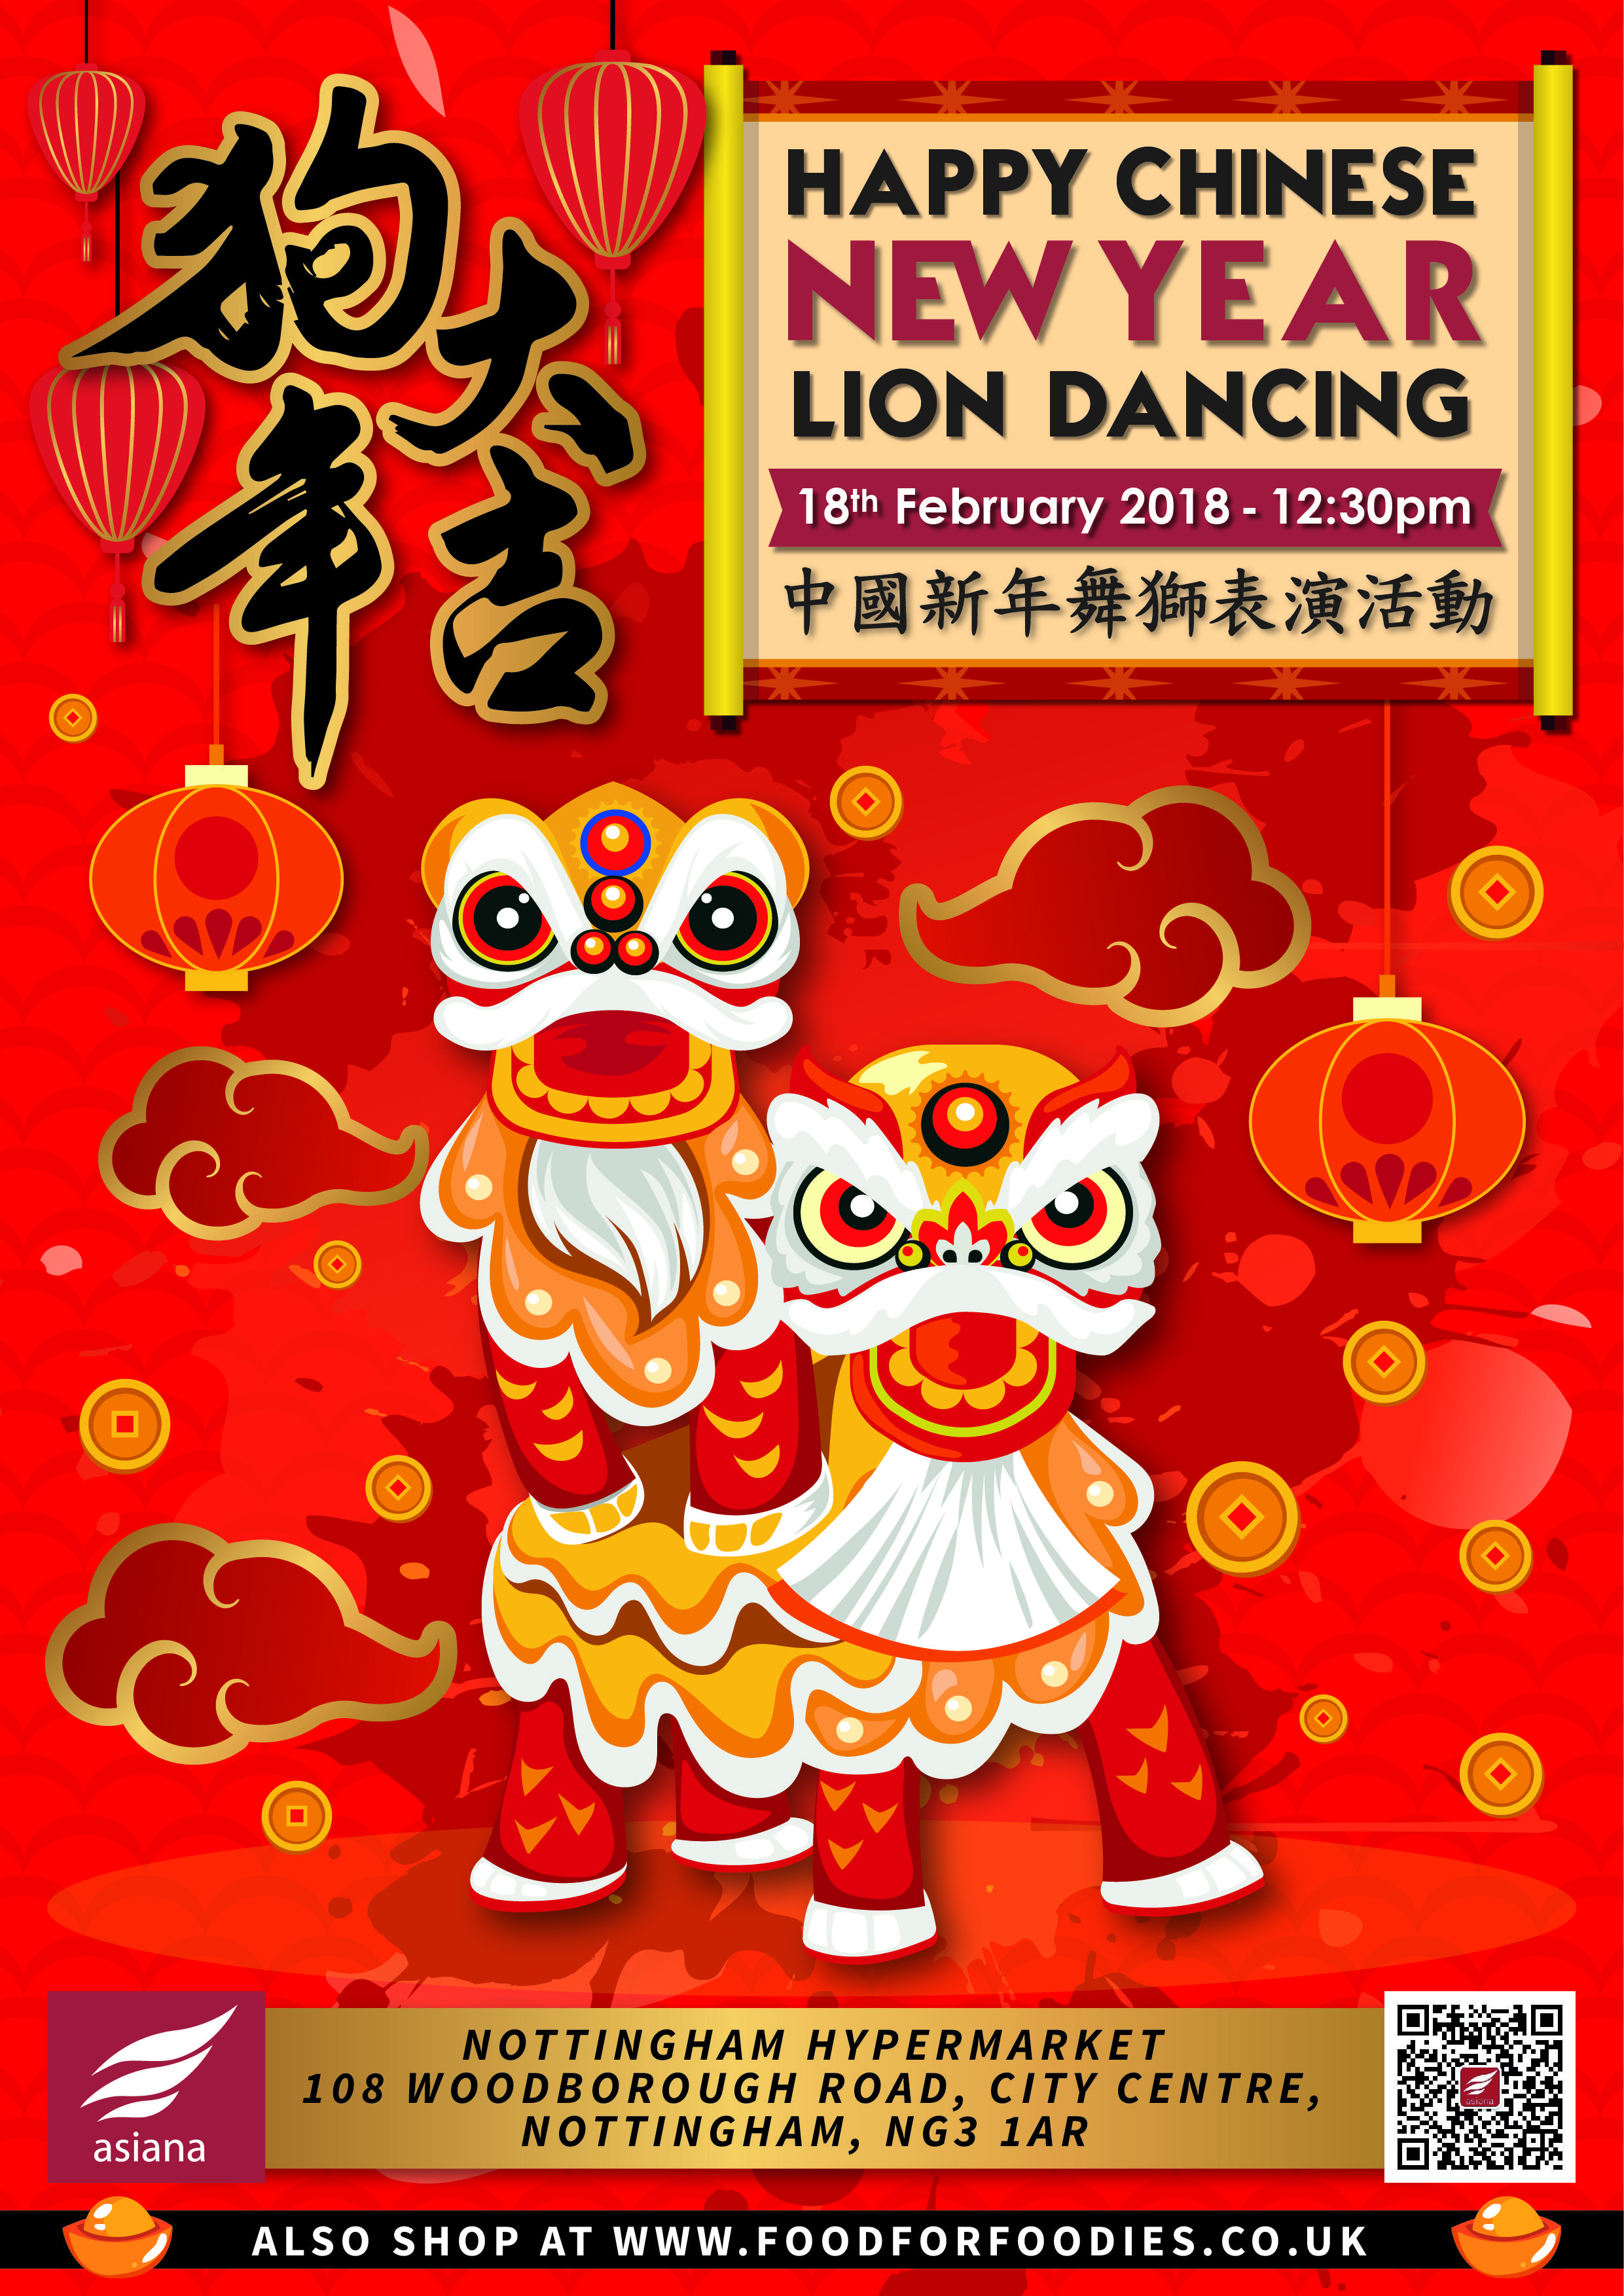 Free Chinese New Year 2018 Lion Dancing